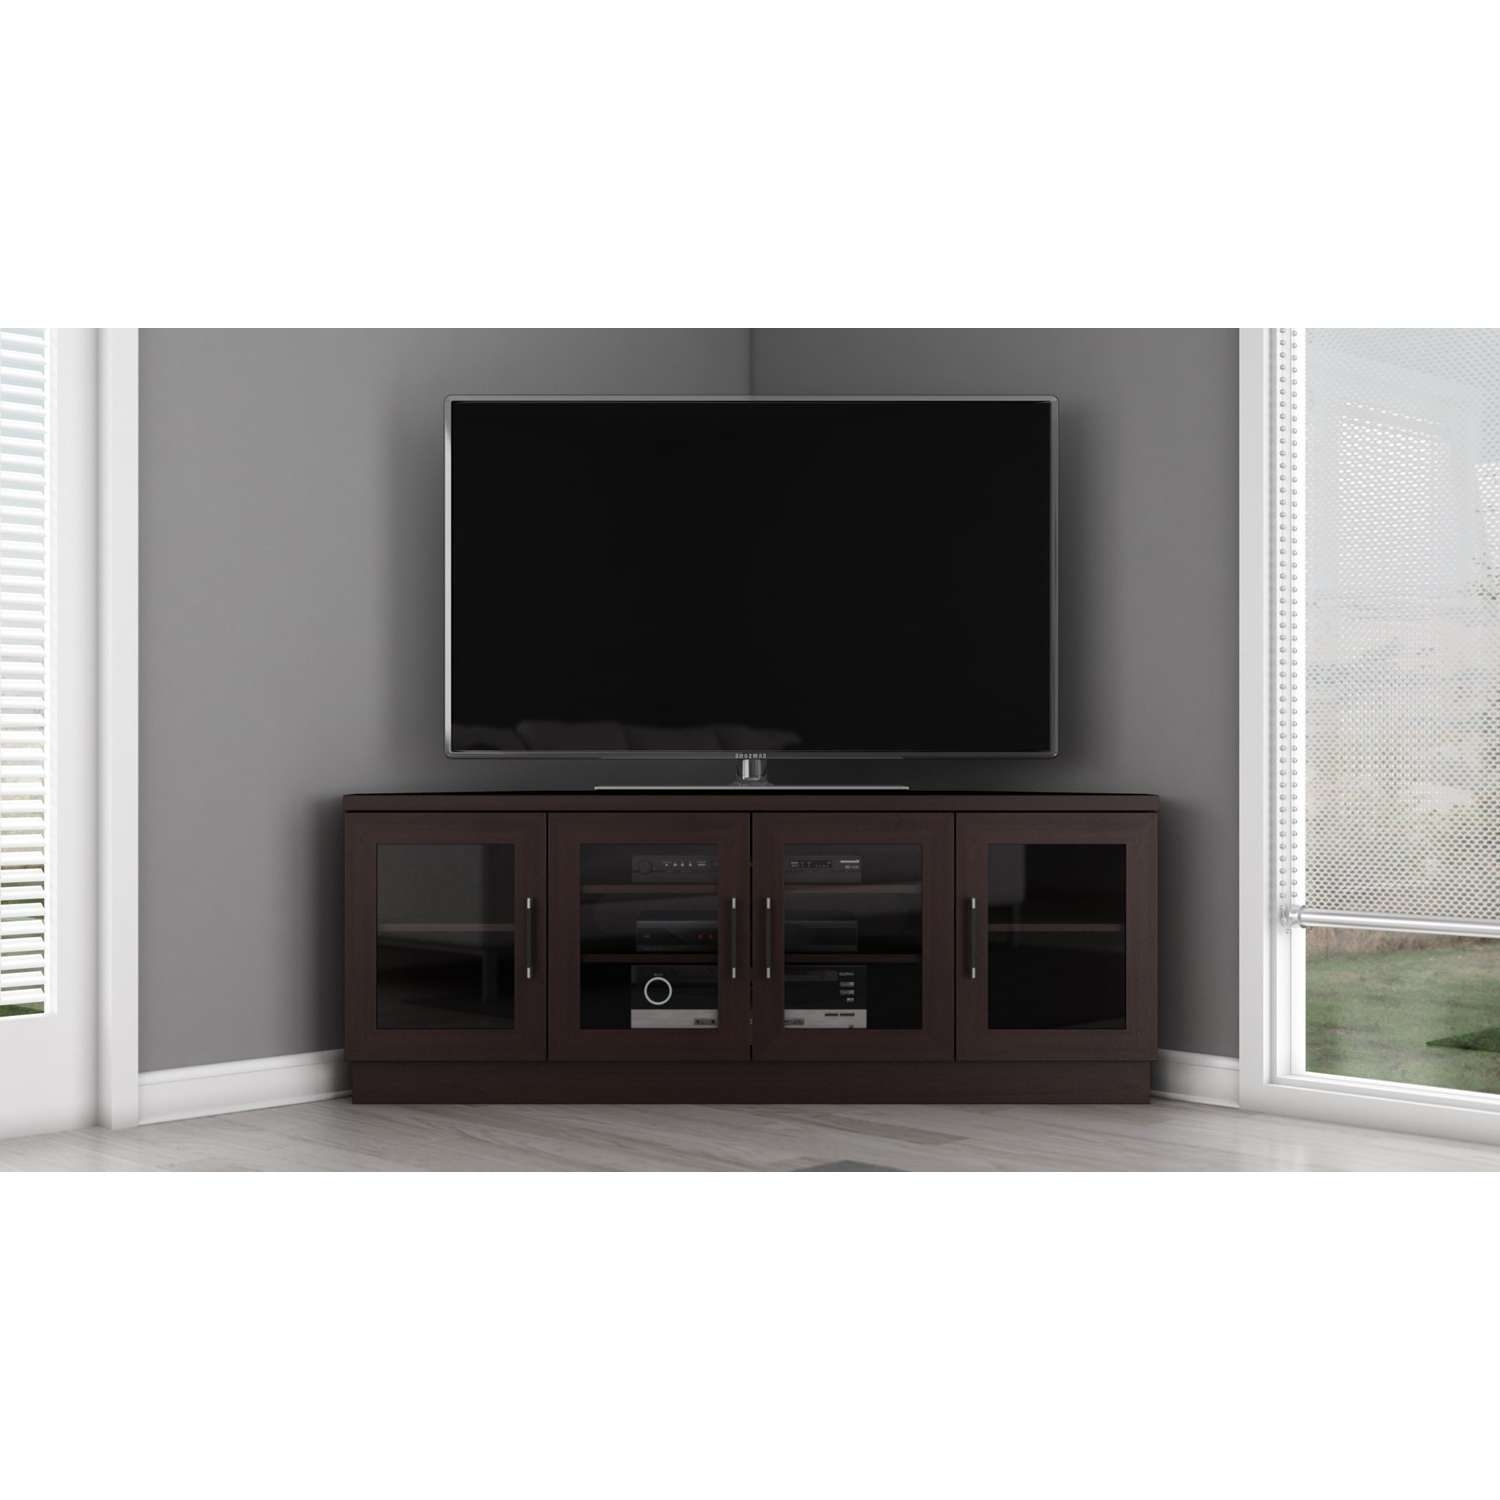 Tv Stand : 39 Fantastic Corner Tv Stand For 60 Inch Tv Image Pertaining To Corner Tv Stands For 60 Inch Tv (View 12 of 15)